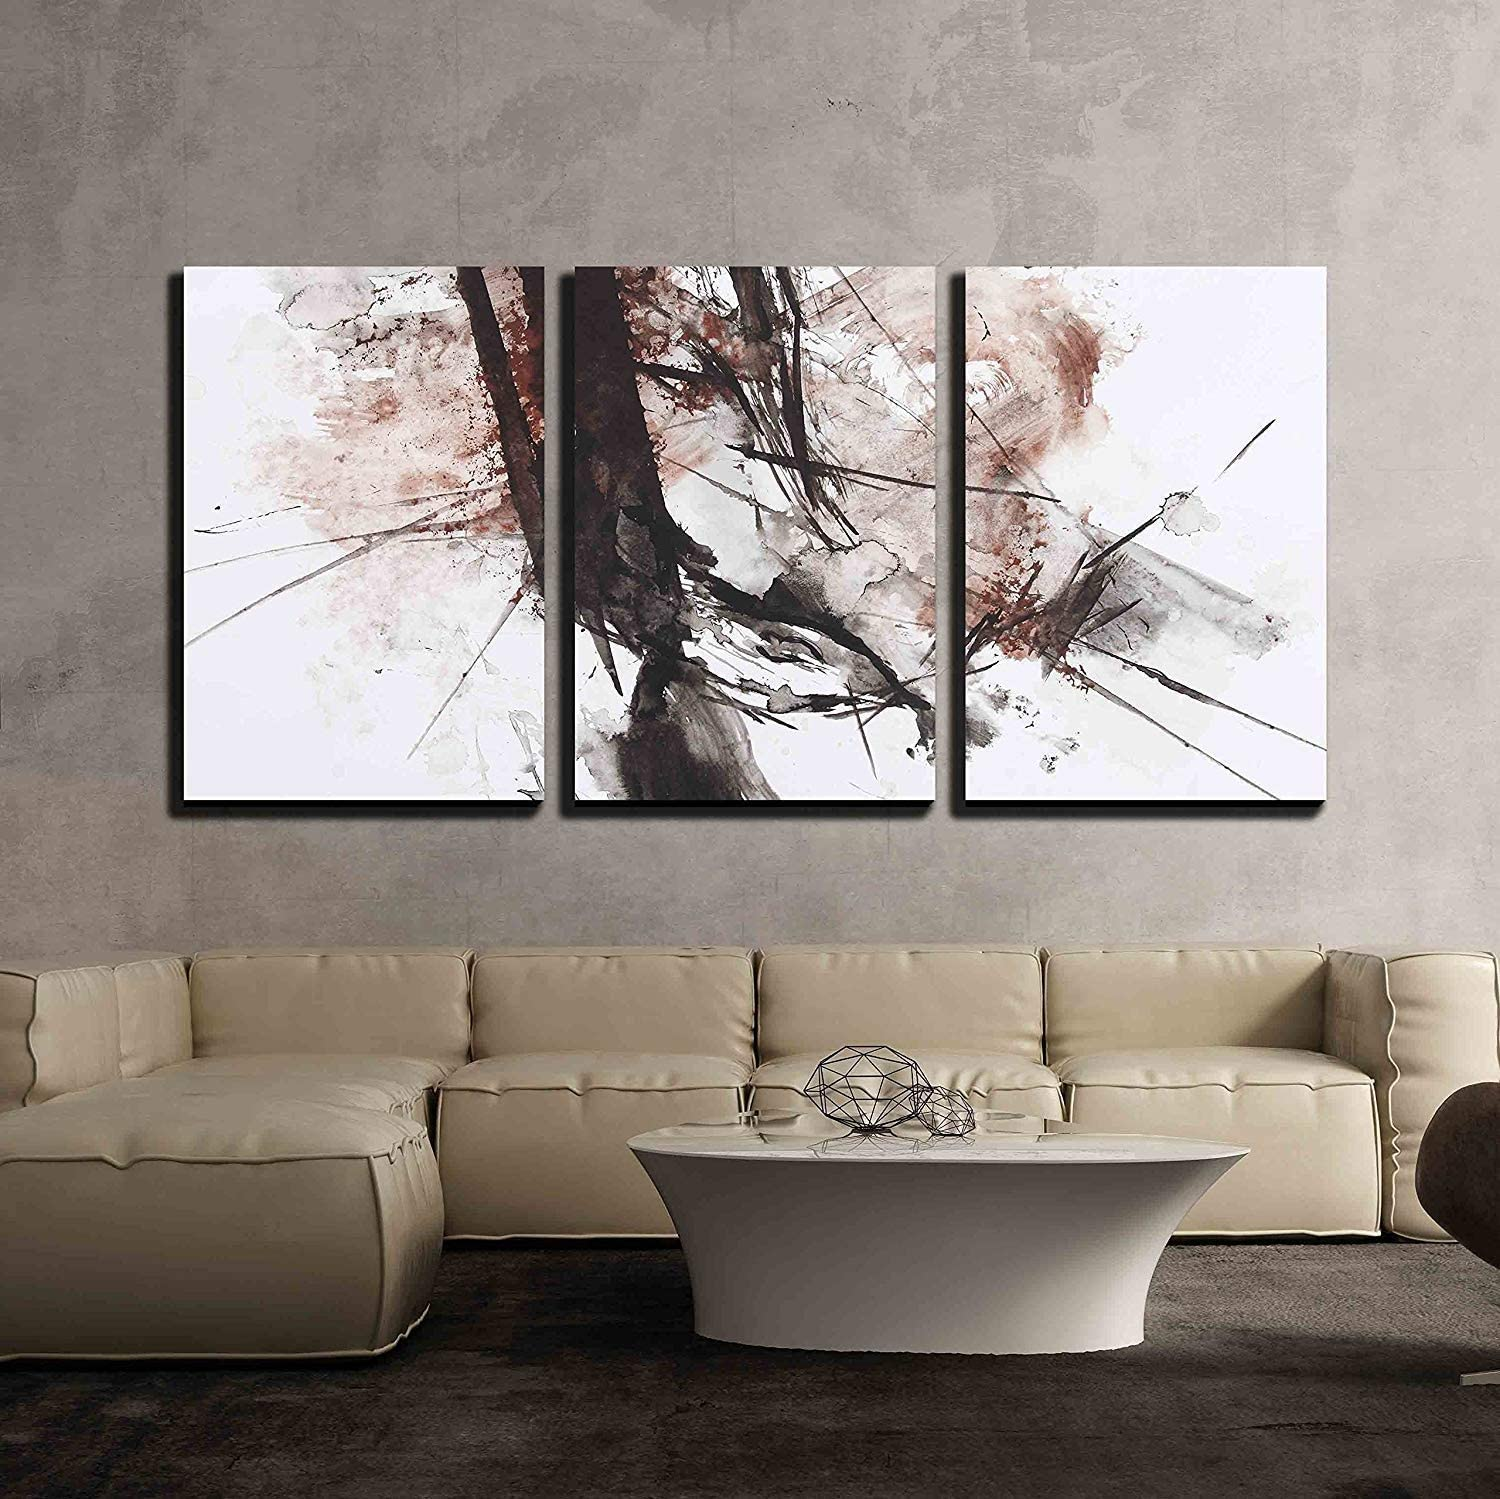 Handsome Work of Art, Black and Red Abstract Brush Painting x3 Panels, Professional Creation